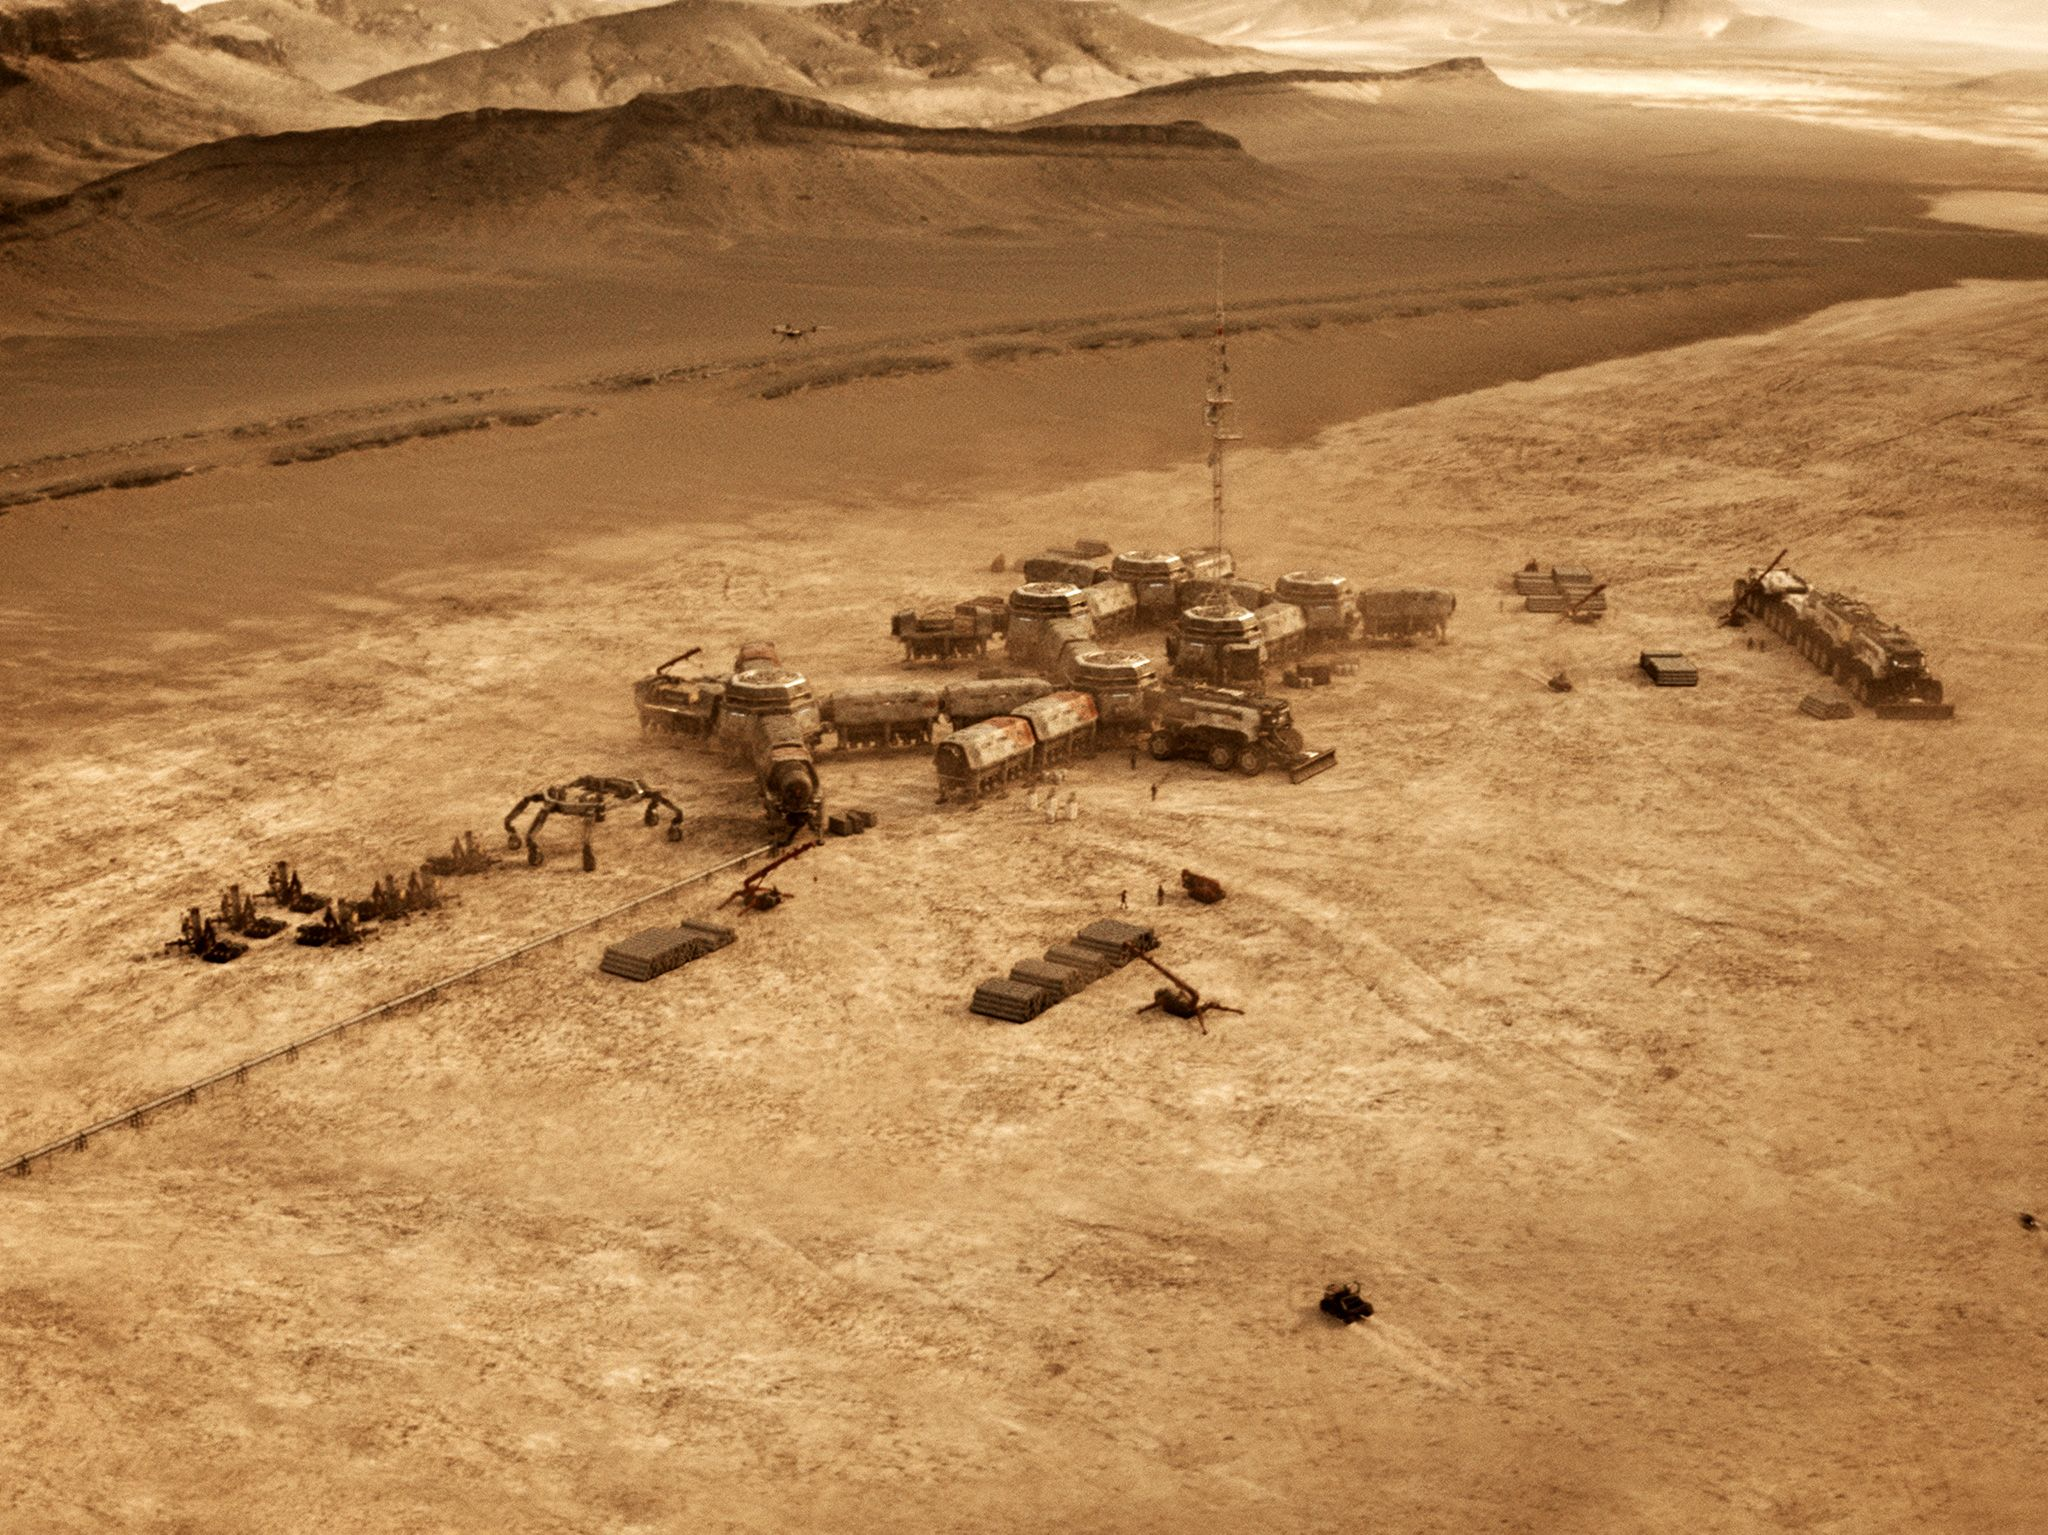 CGI: The whole of Lukrum colony on the Martian surface. This image is from Mars. [Foto del giorno - novembre 2018]